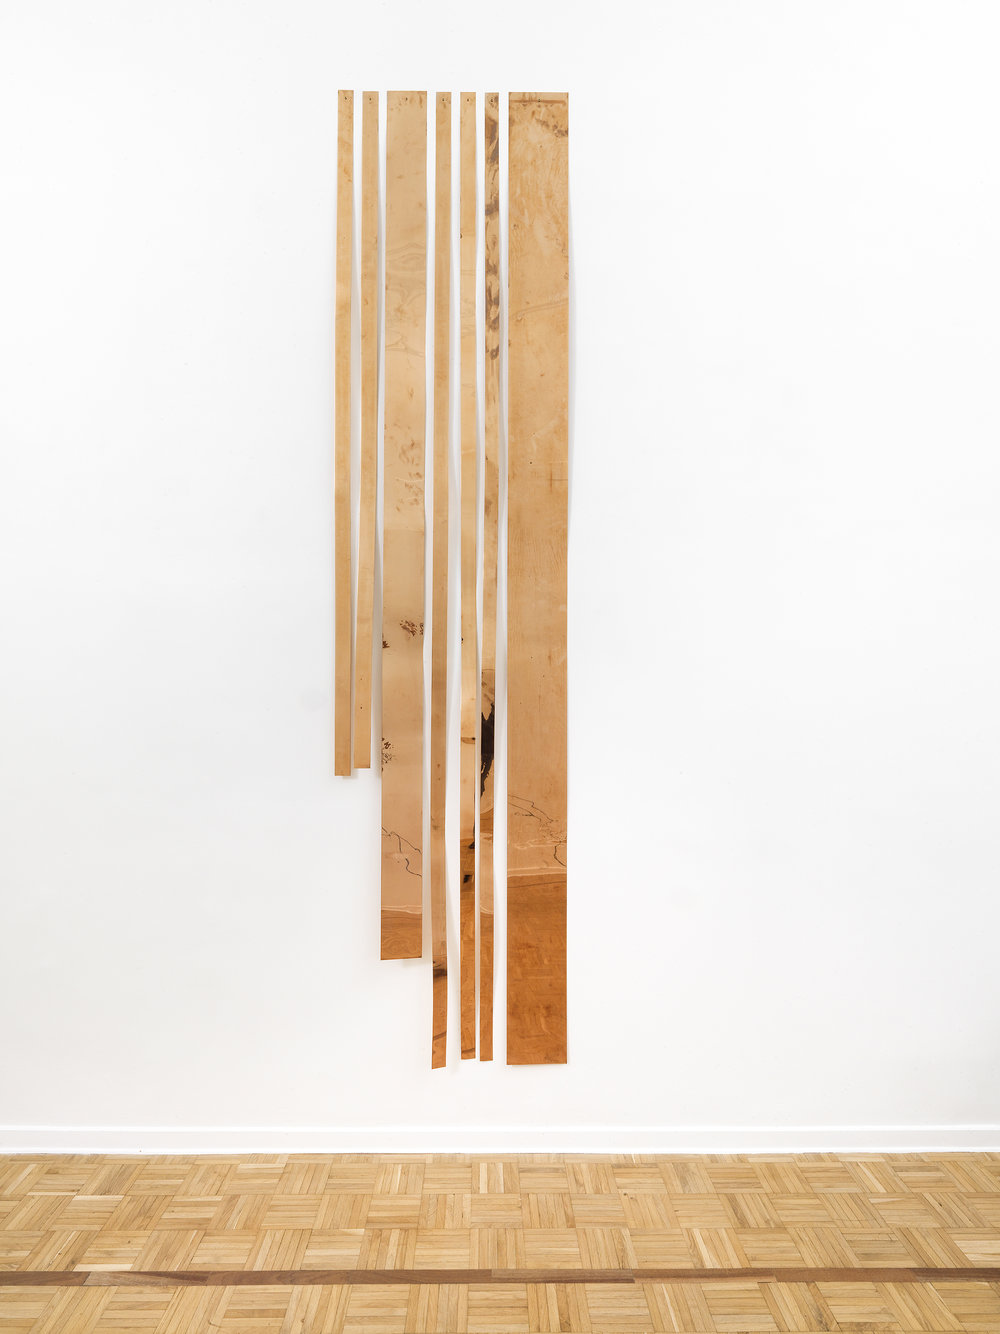 """Copper Remnants (60"""" x 120"""" 48 ounce C11000 Copper Alloy, 90º Bend, 60"""" Bisection/5 Sections)    2014   Polished copper  Dimensions variable, 7 parts   Remnants, 2011–"""